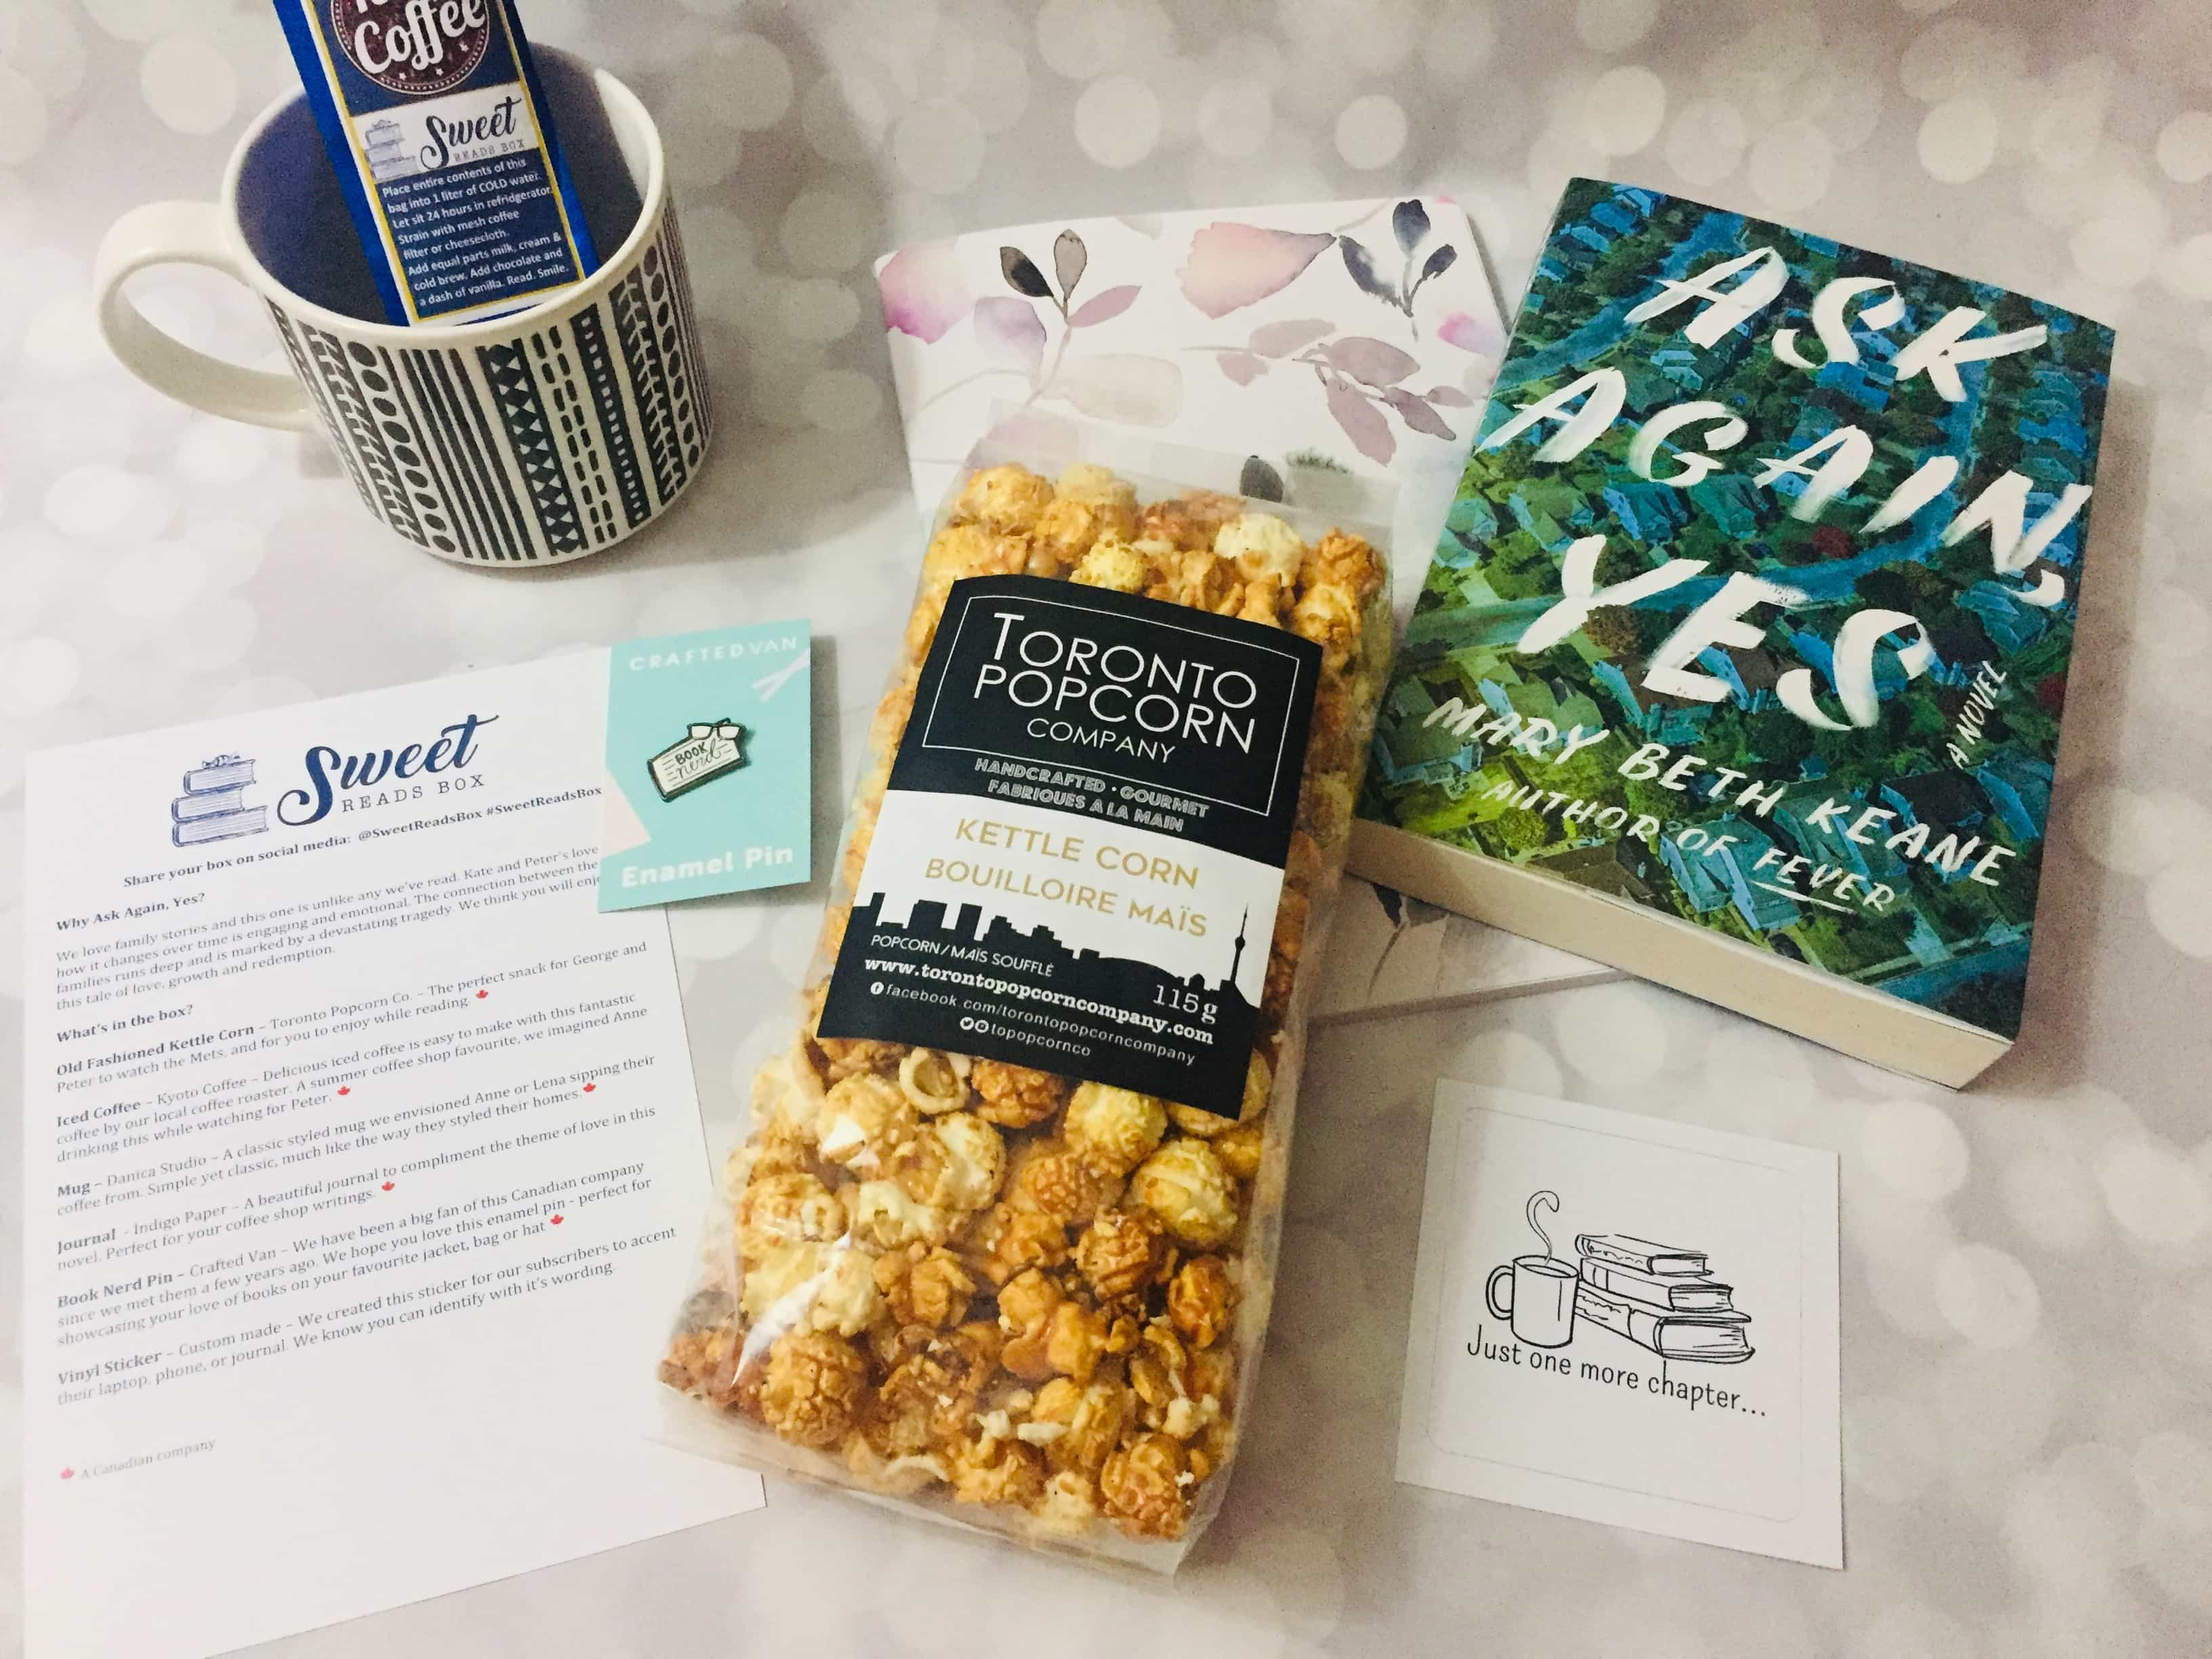 Sweet Reads Box July 2019 Subscription Box Review + Coupon